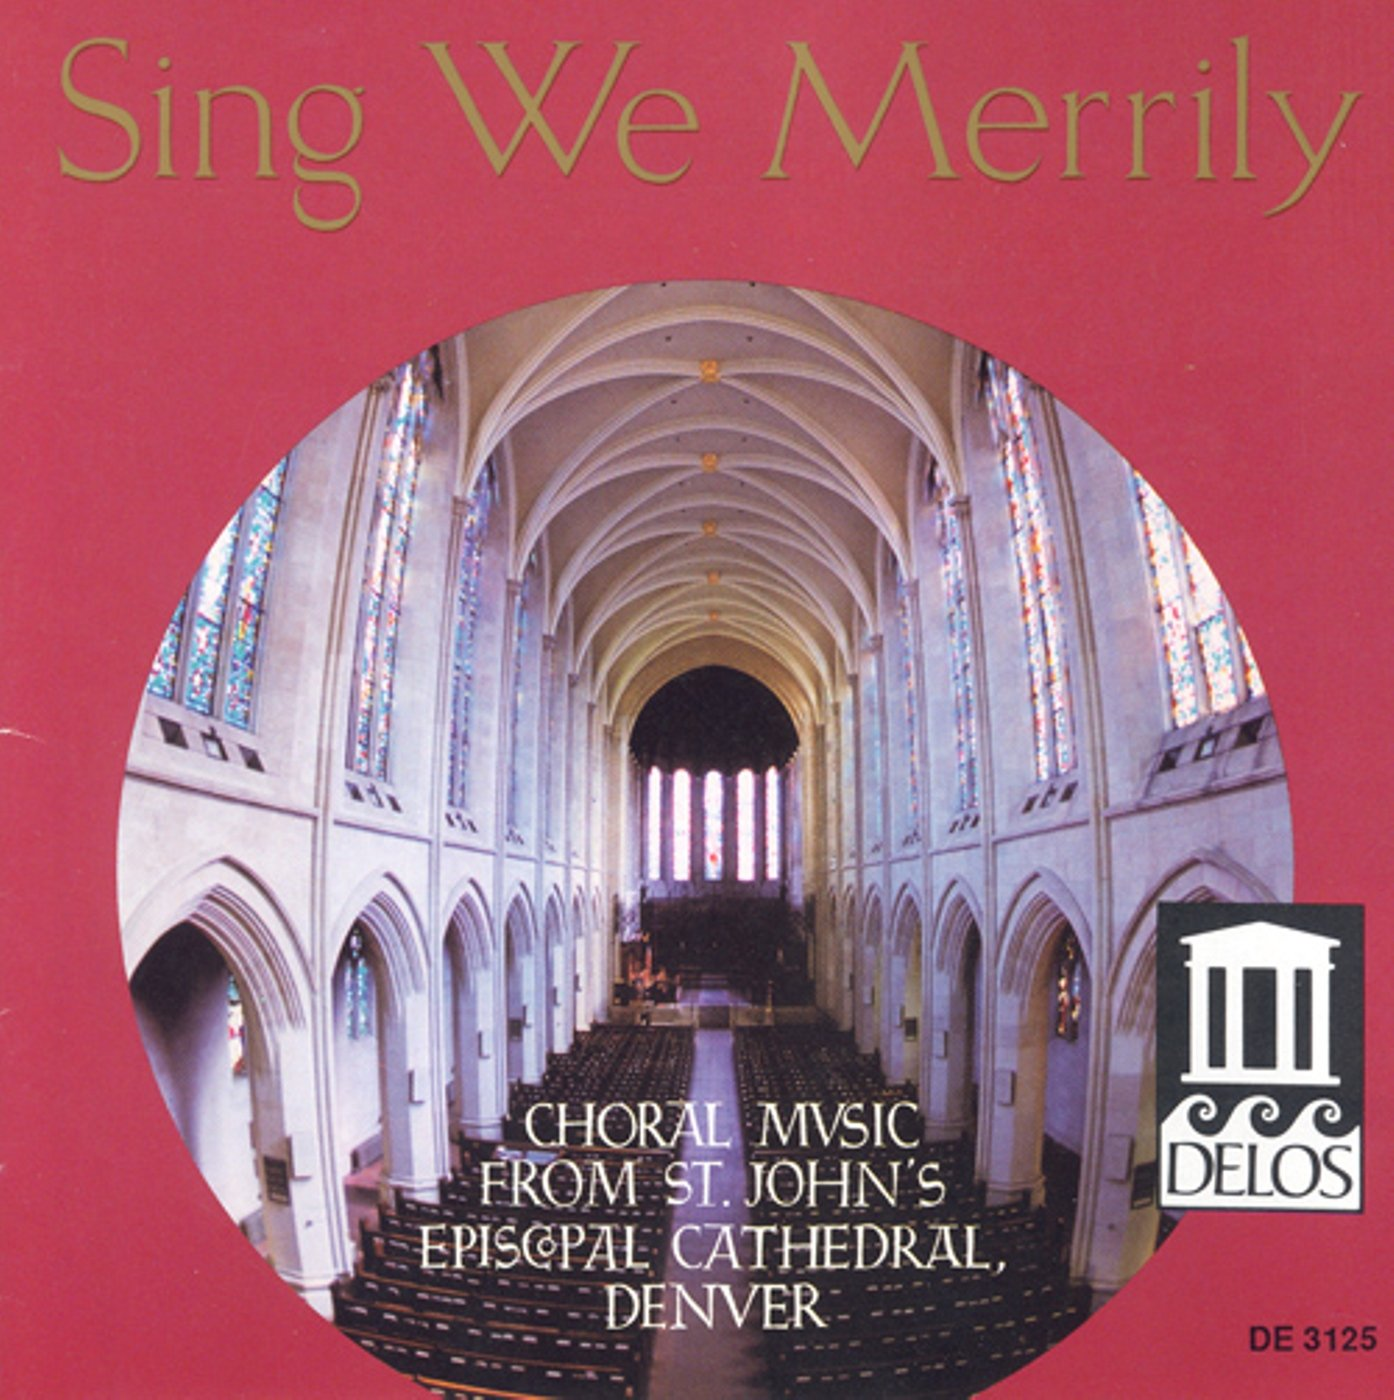 Sing We Merrily: Choral Music from St. John's Episcopal Cathedral, Denver by green hill